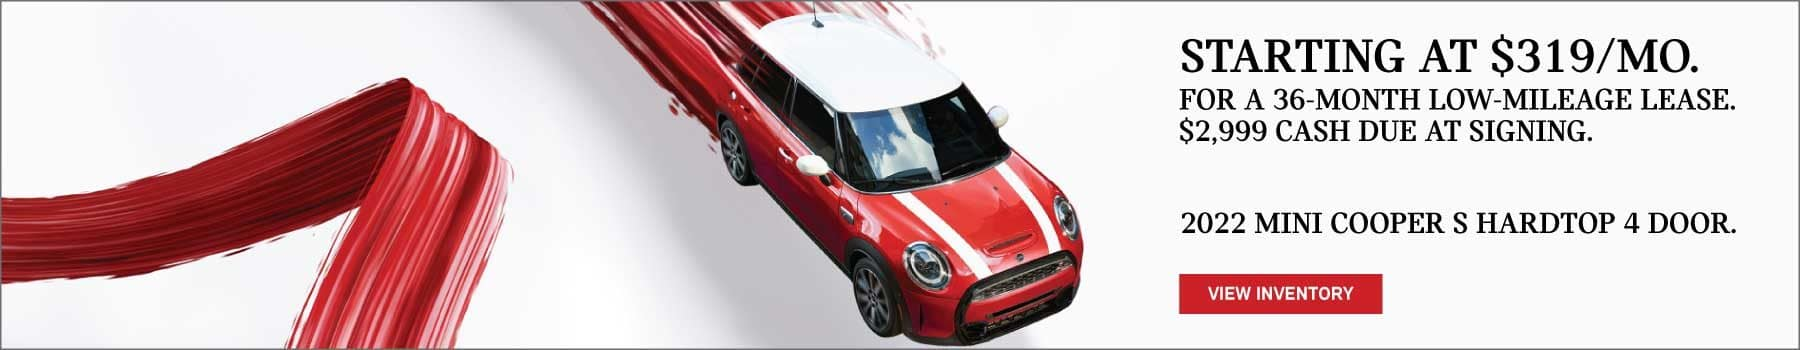 Lease a MINI Cooper S Hardtop 4 Door. Starting at $319 for a 36 month low mileage lease. $2,999 cash due at signing.